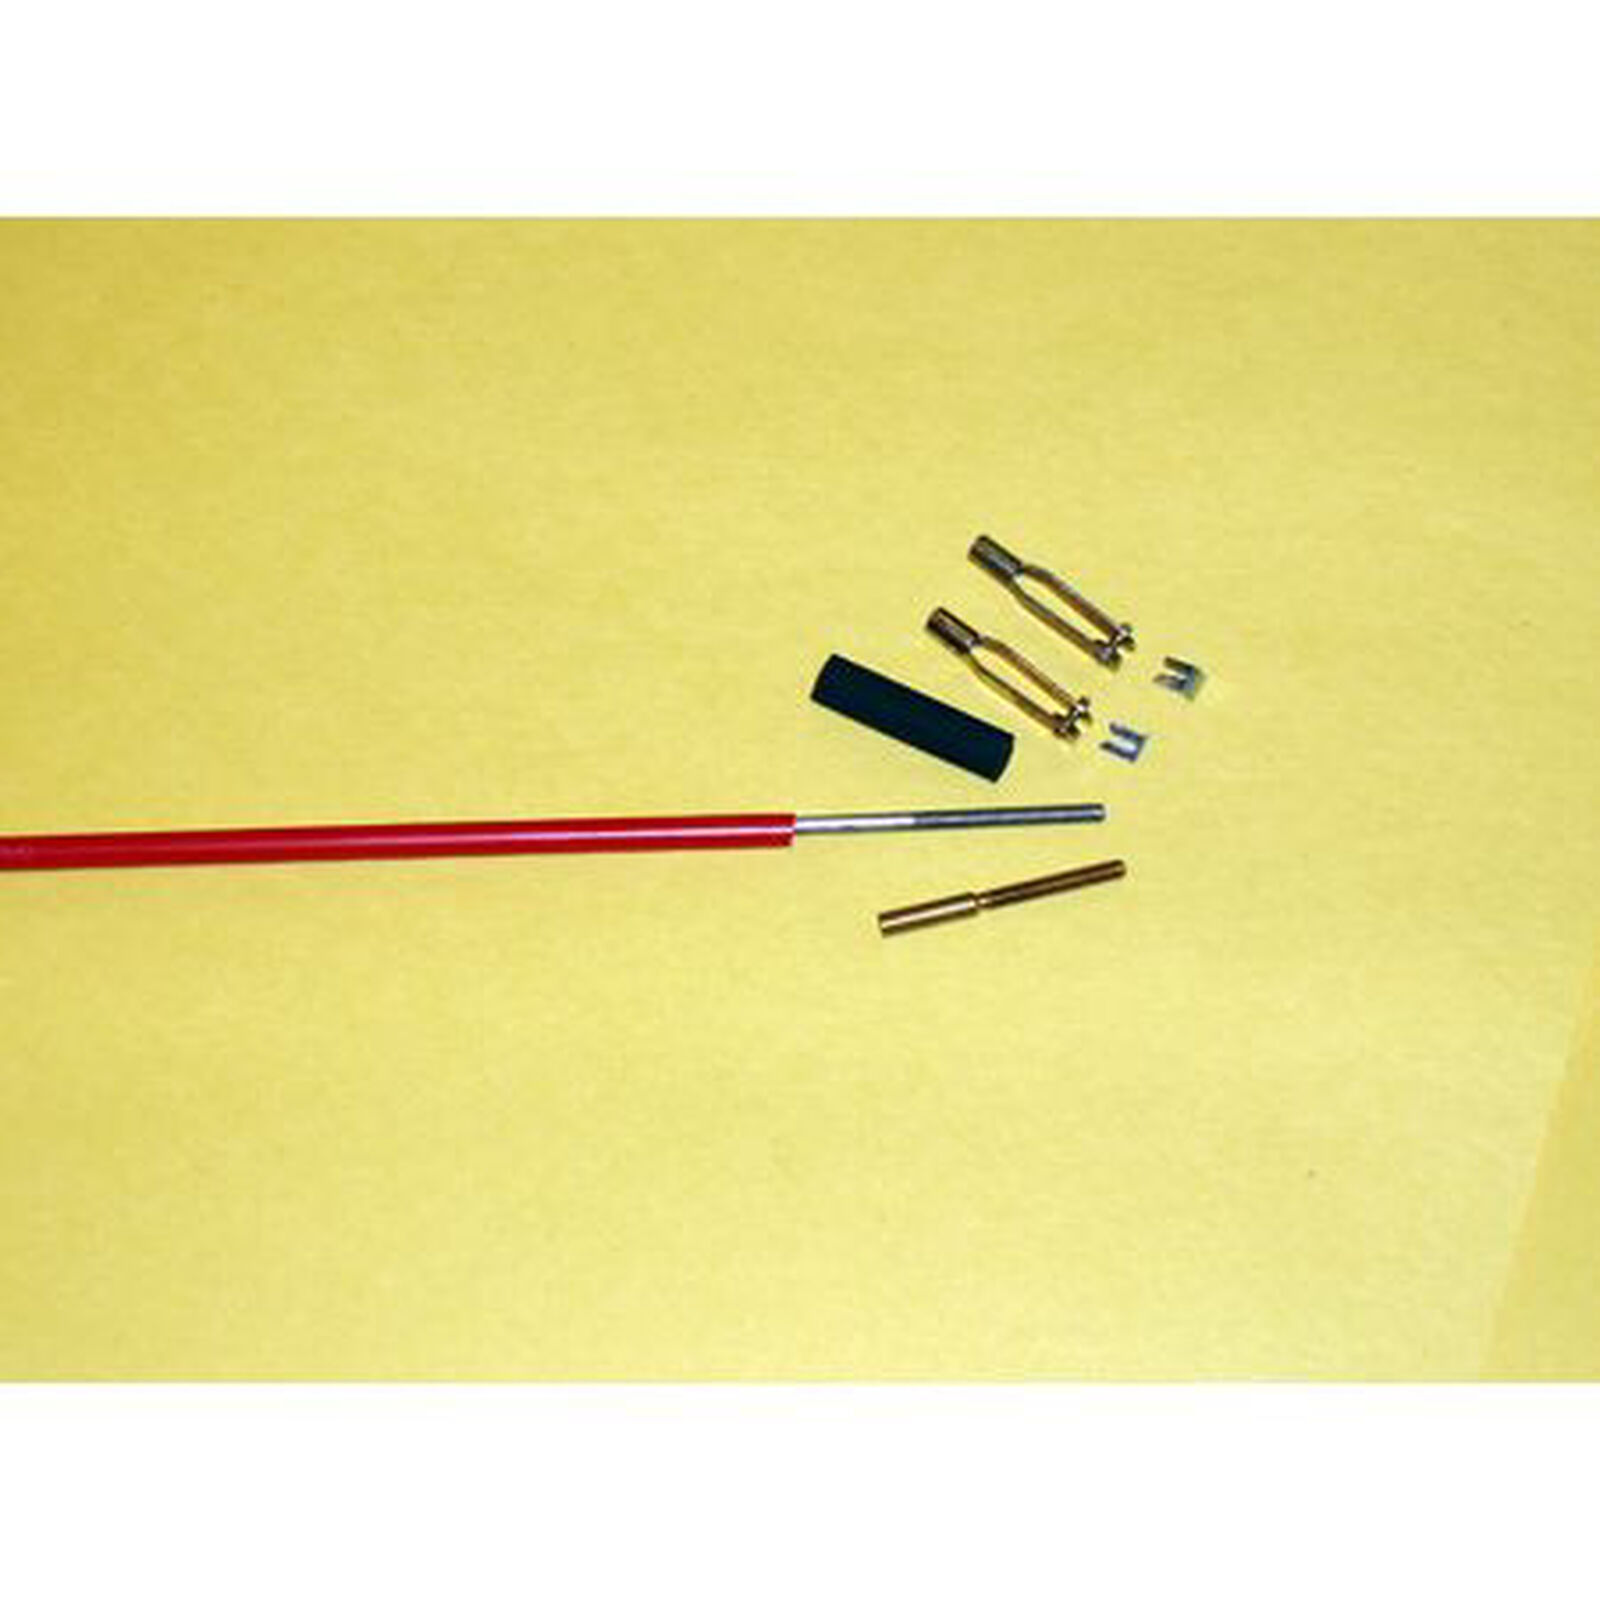 Pushrod,36 Steel with Clevis 4-40